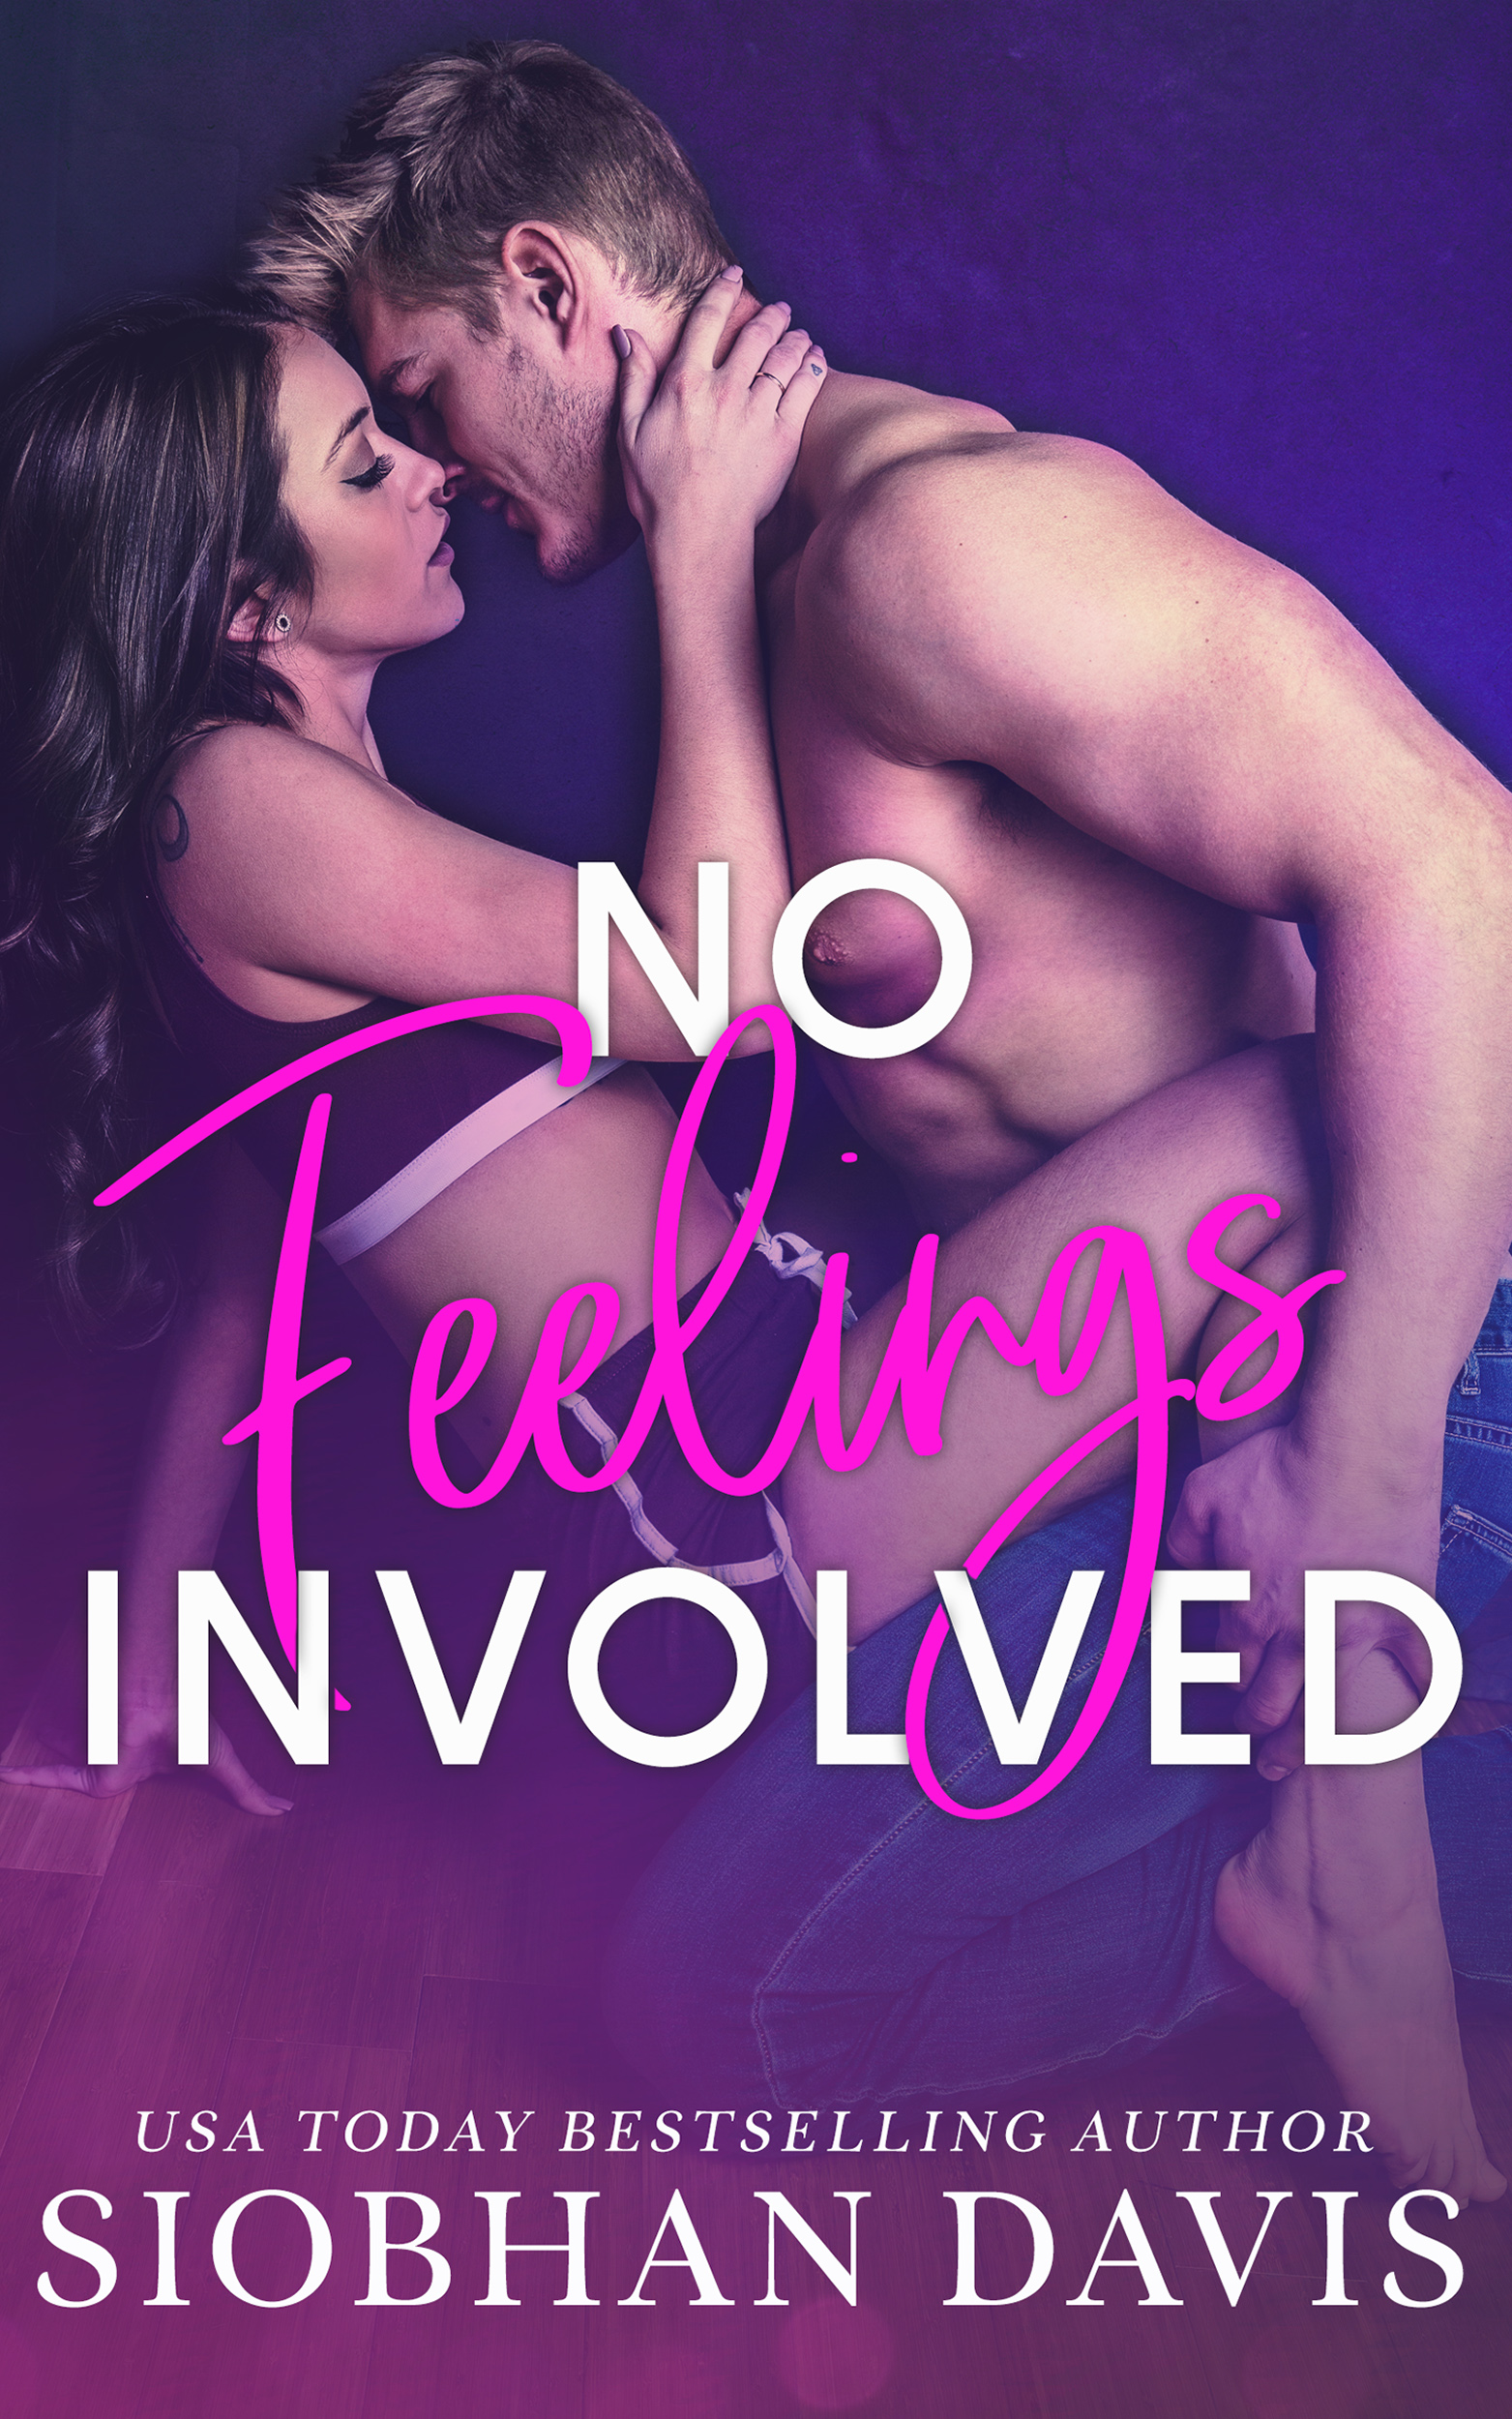 No Feelings Involved by Siobhan Davis book cover